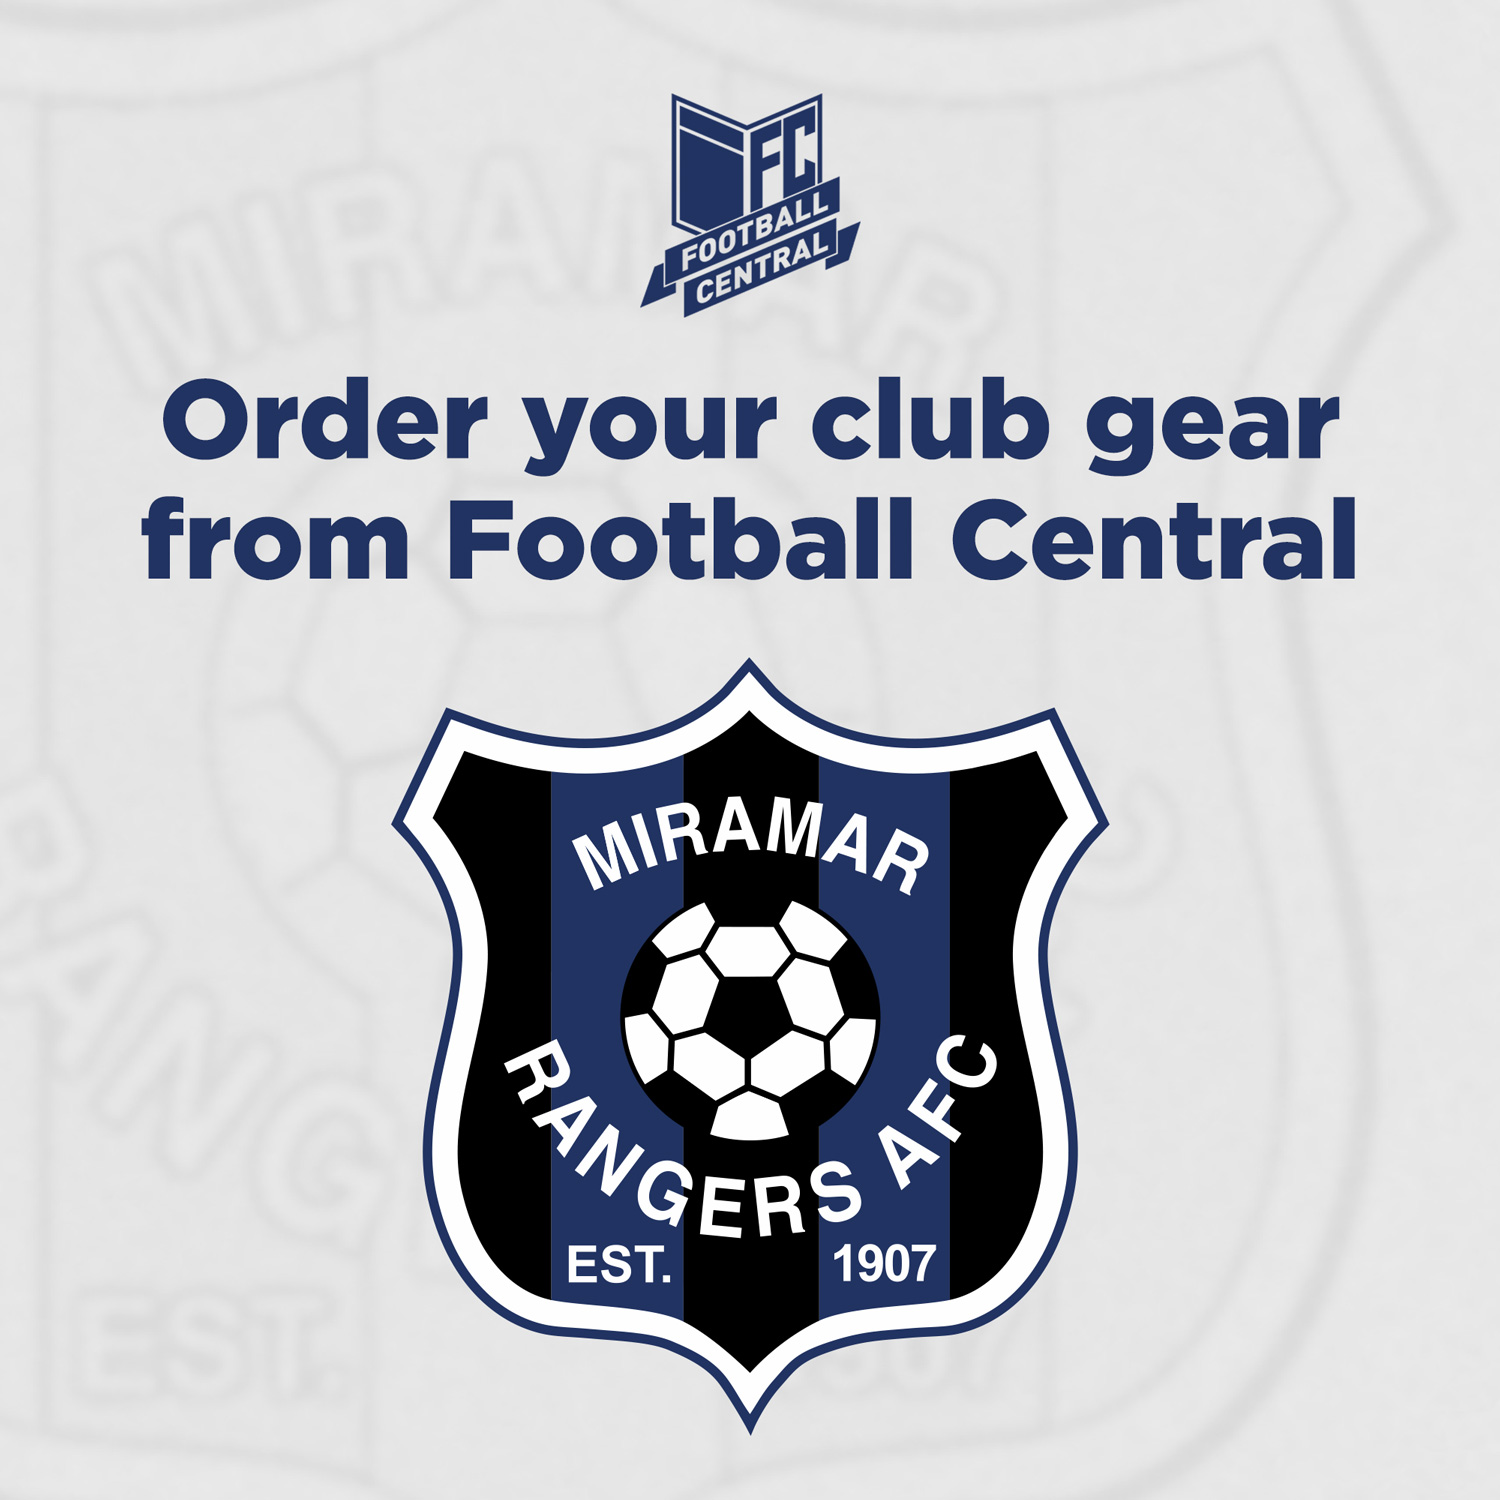 Order-your-club-gear-Miramar-1500.jpg